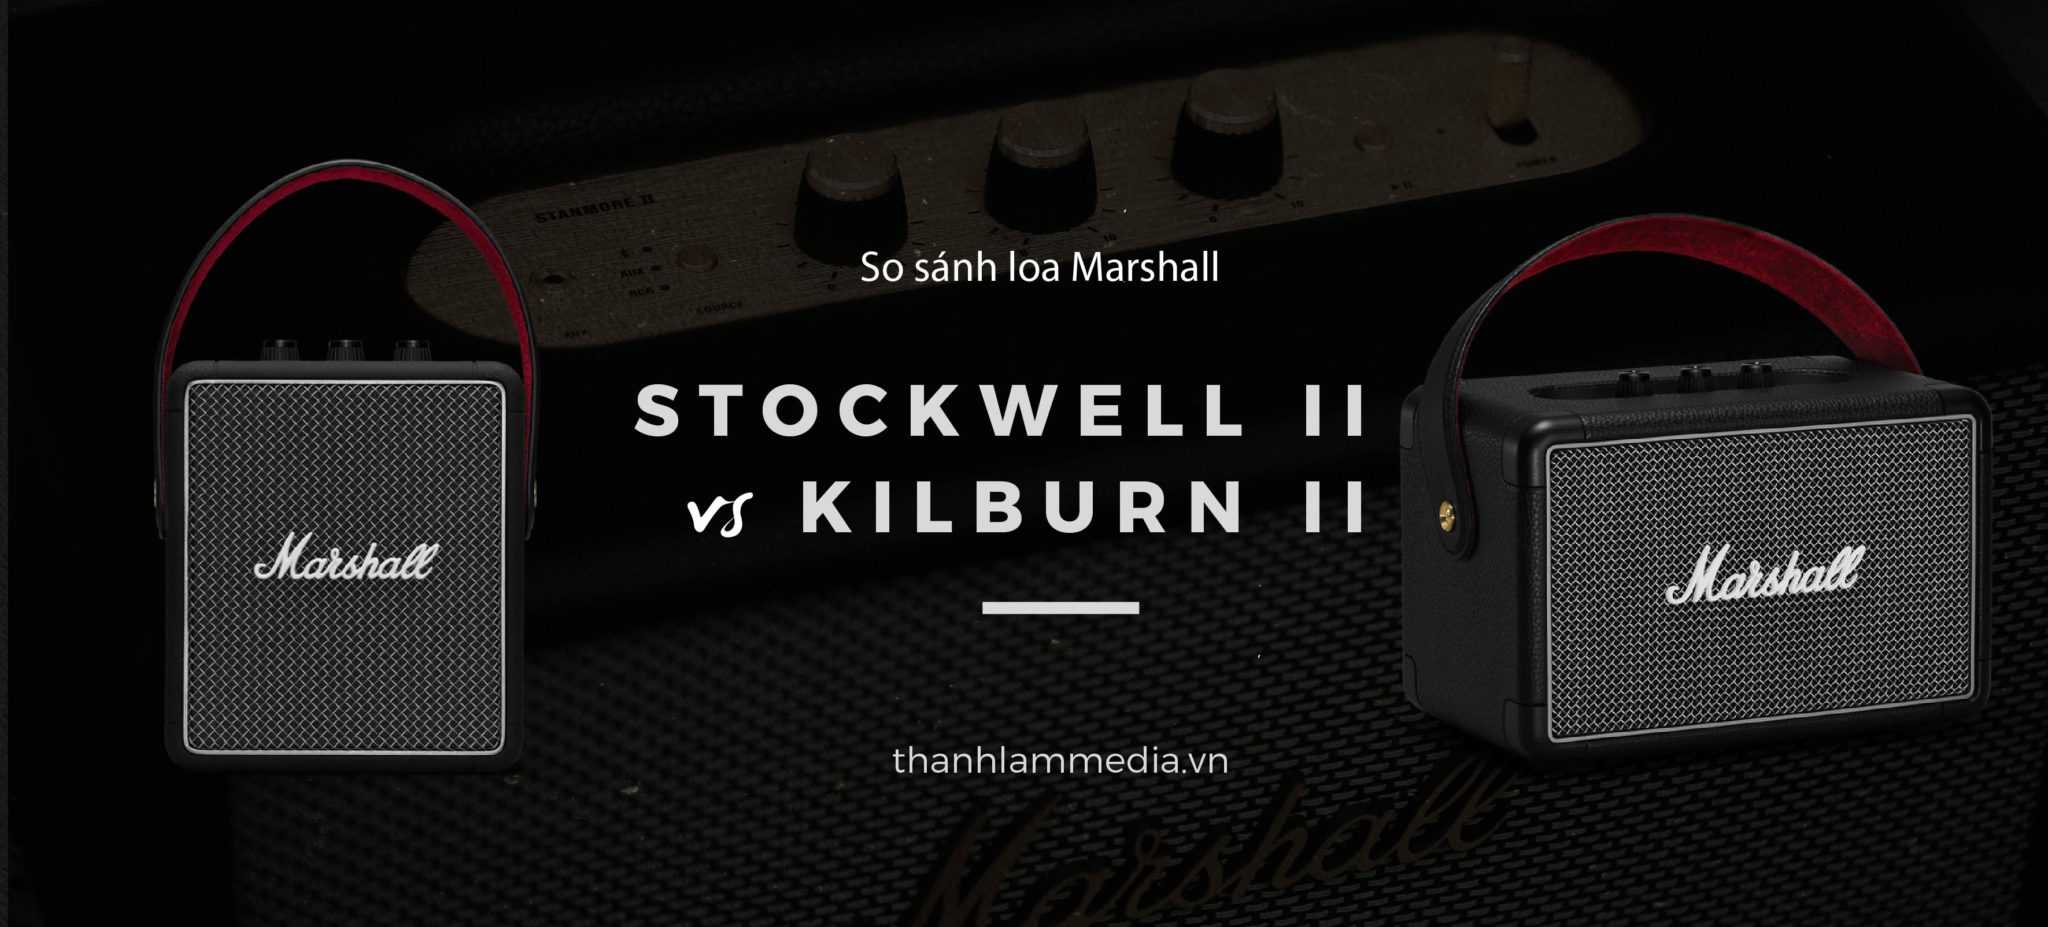 So sánh Marshall stockwell II và Marshall Kilburn II 1